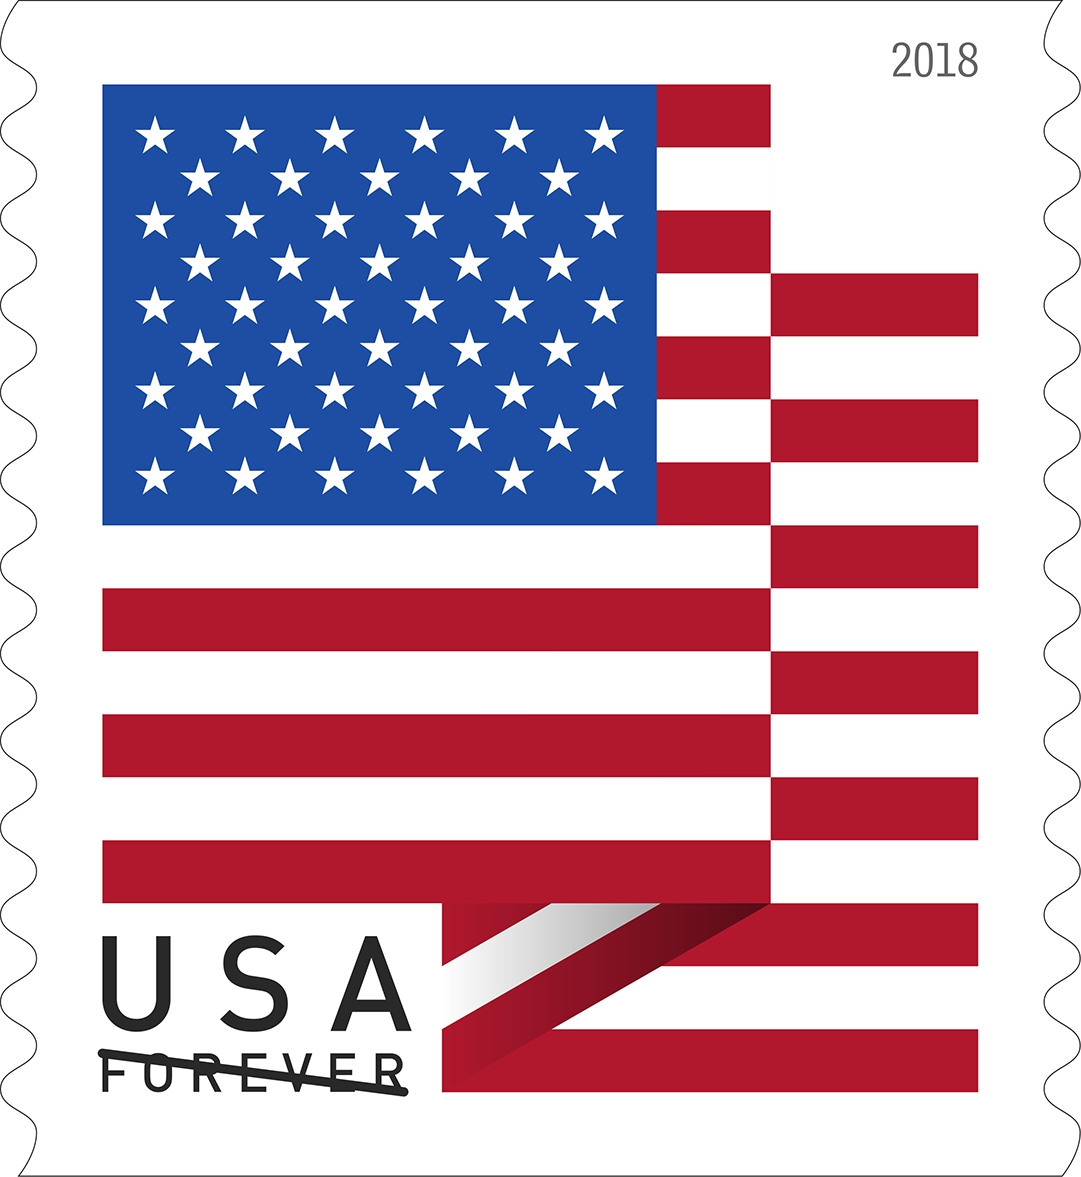 U.S. Flag: For more than half a century, U.S. stamps have depicted the American flag in vivid red, white and blue. This eye-catching new issuance continues that tradition with a striking graphic design of a flag with two crisp folds. (USPS)